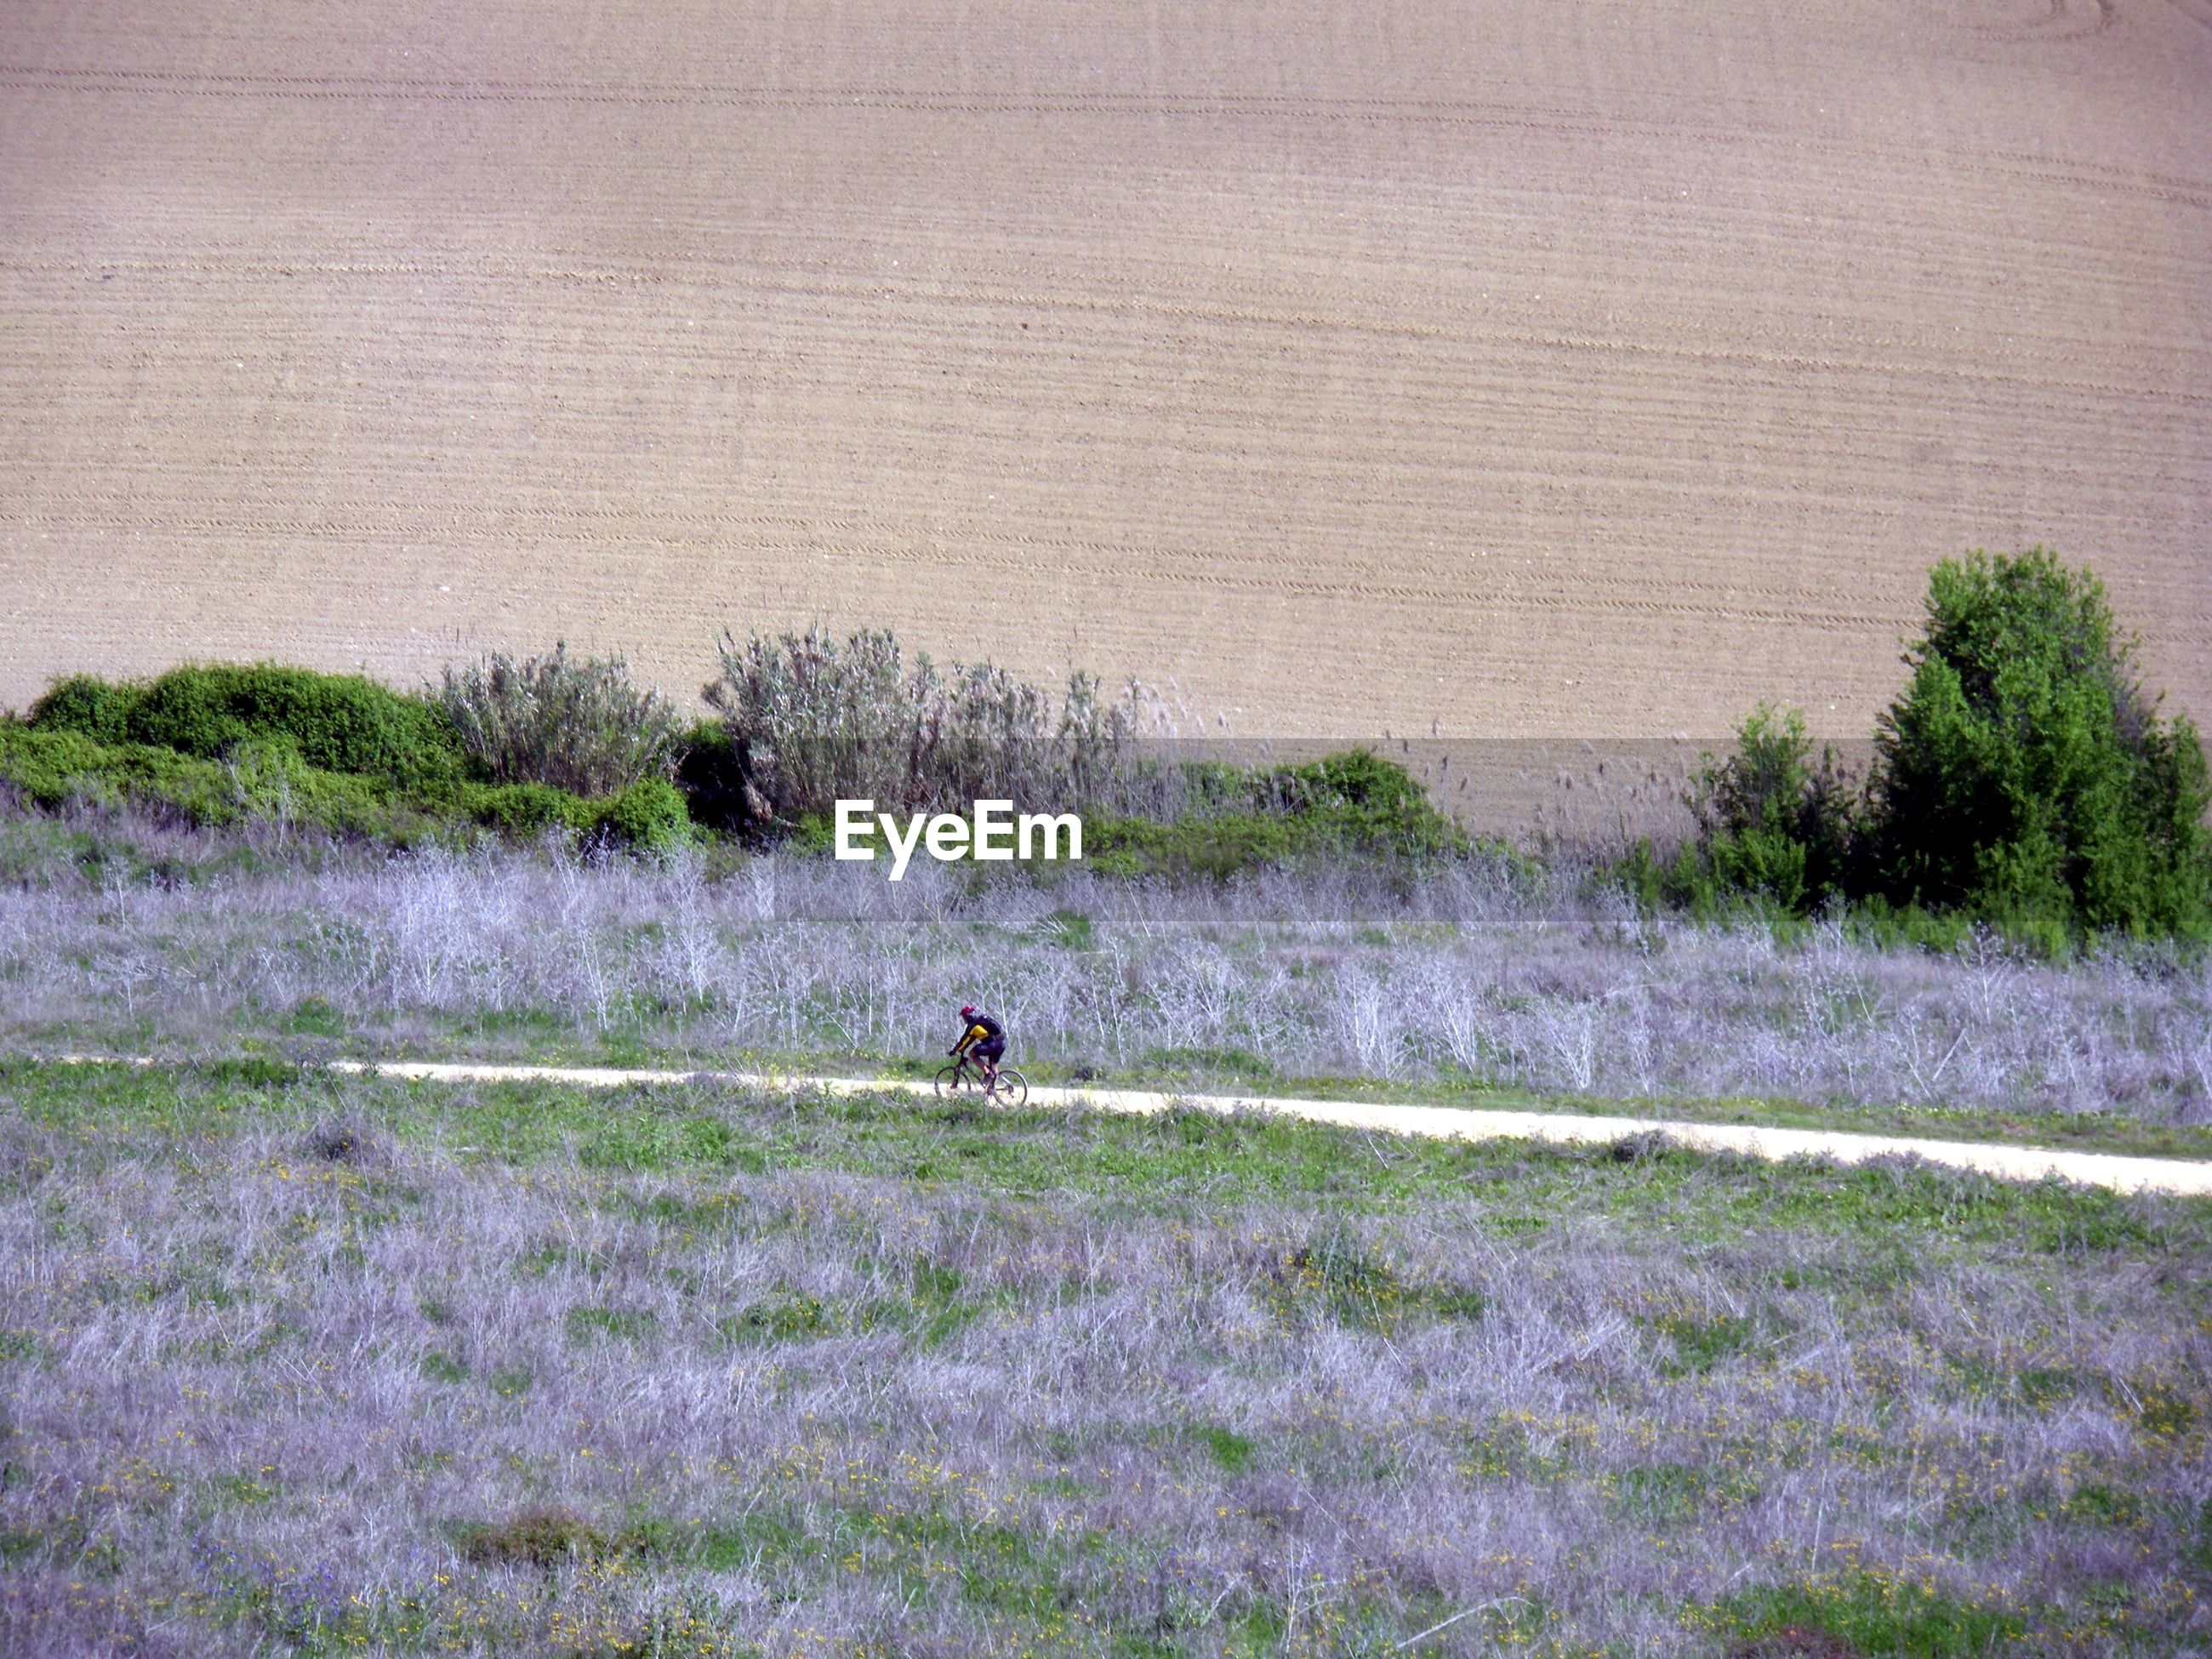 Distant view of person riding bicycle amidst farm field